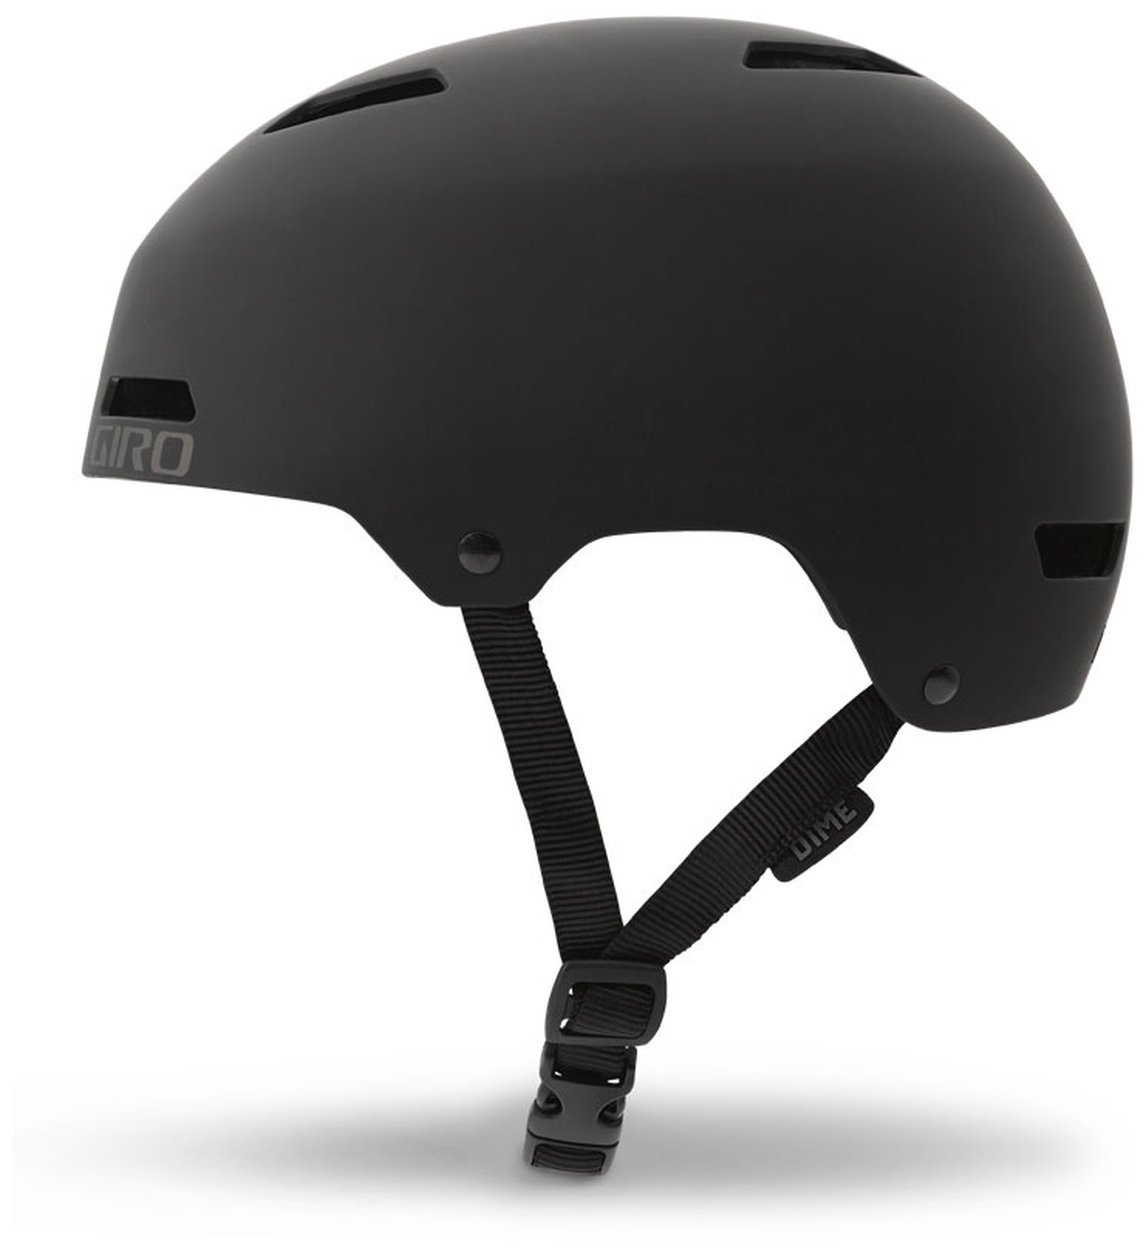 Mips Helmets For Kids And Why Mips Is Best